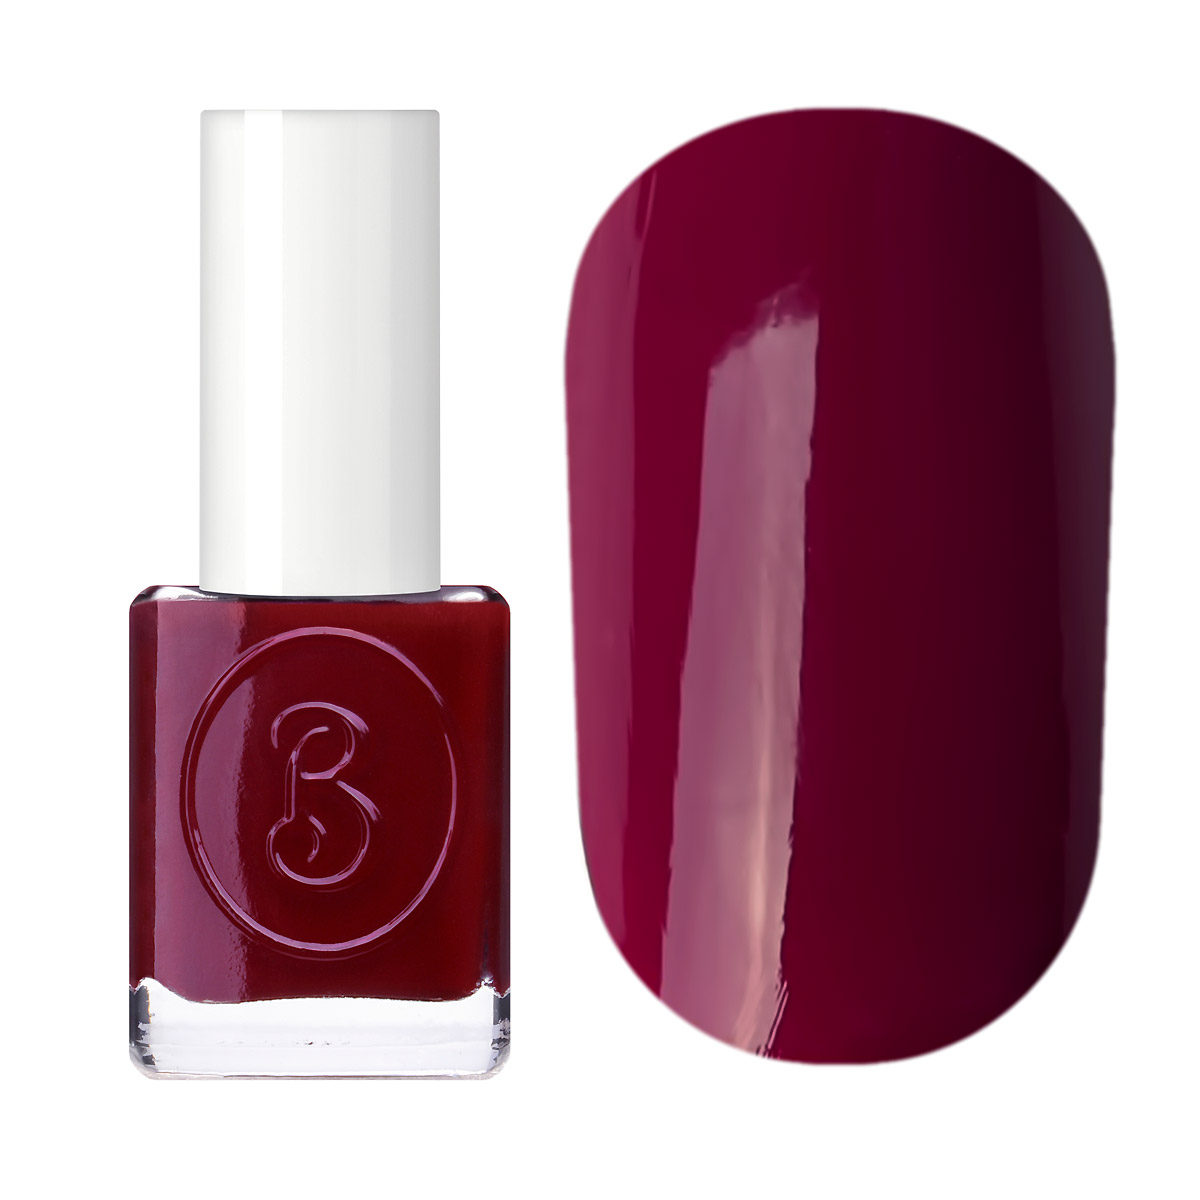 Berenice Oxygen Nail Polish / 09 dark red